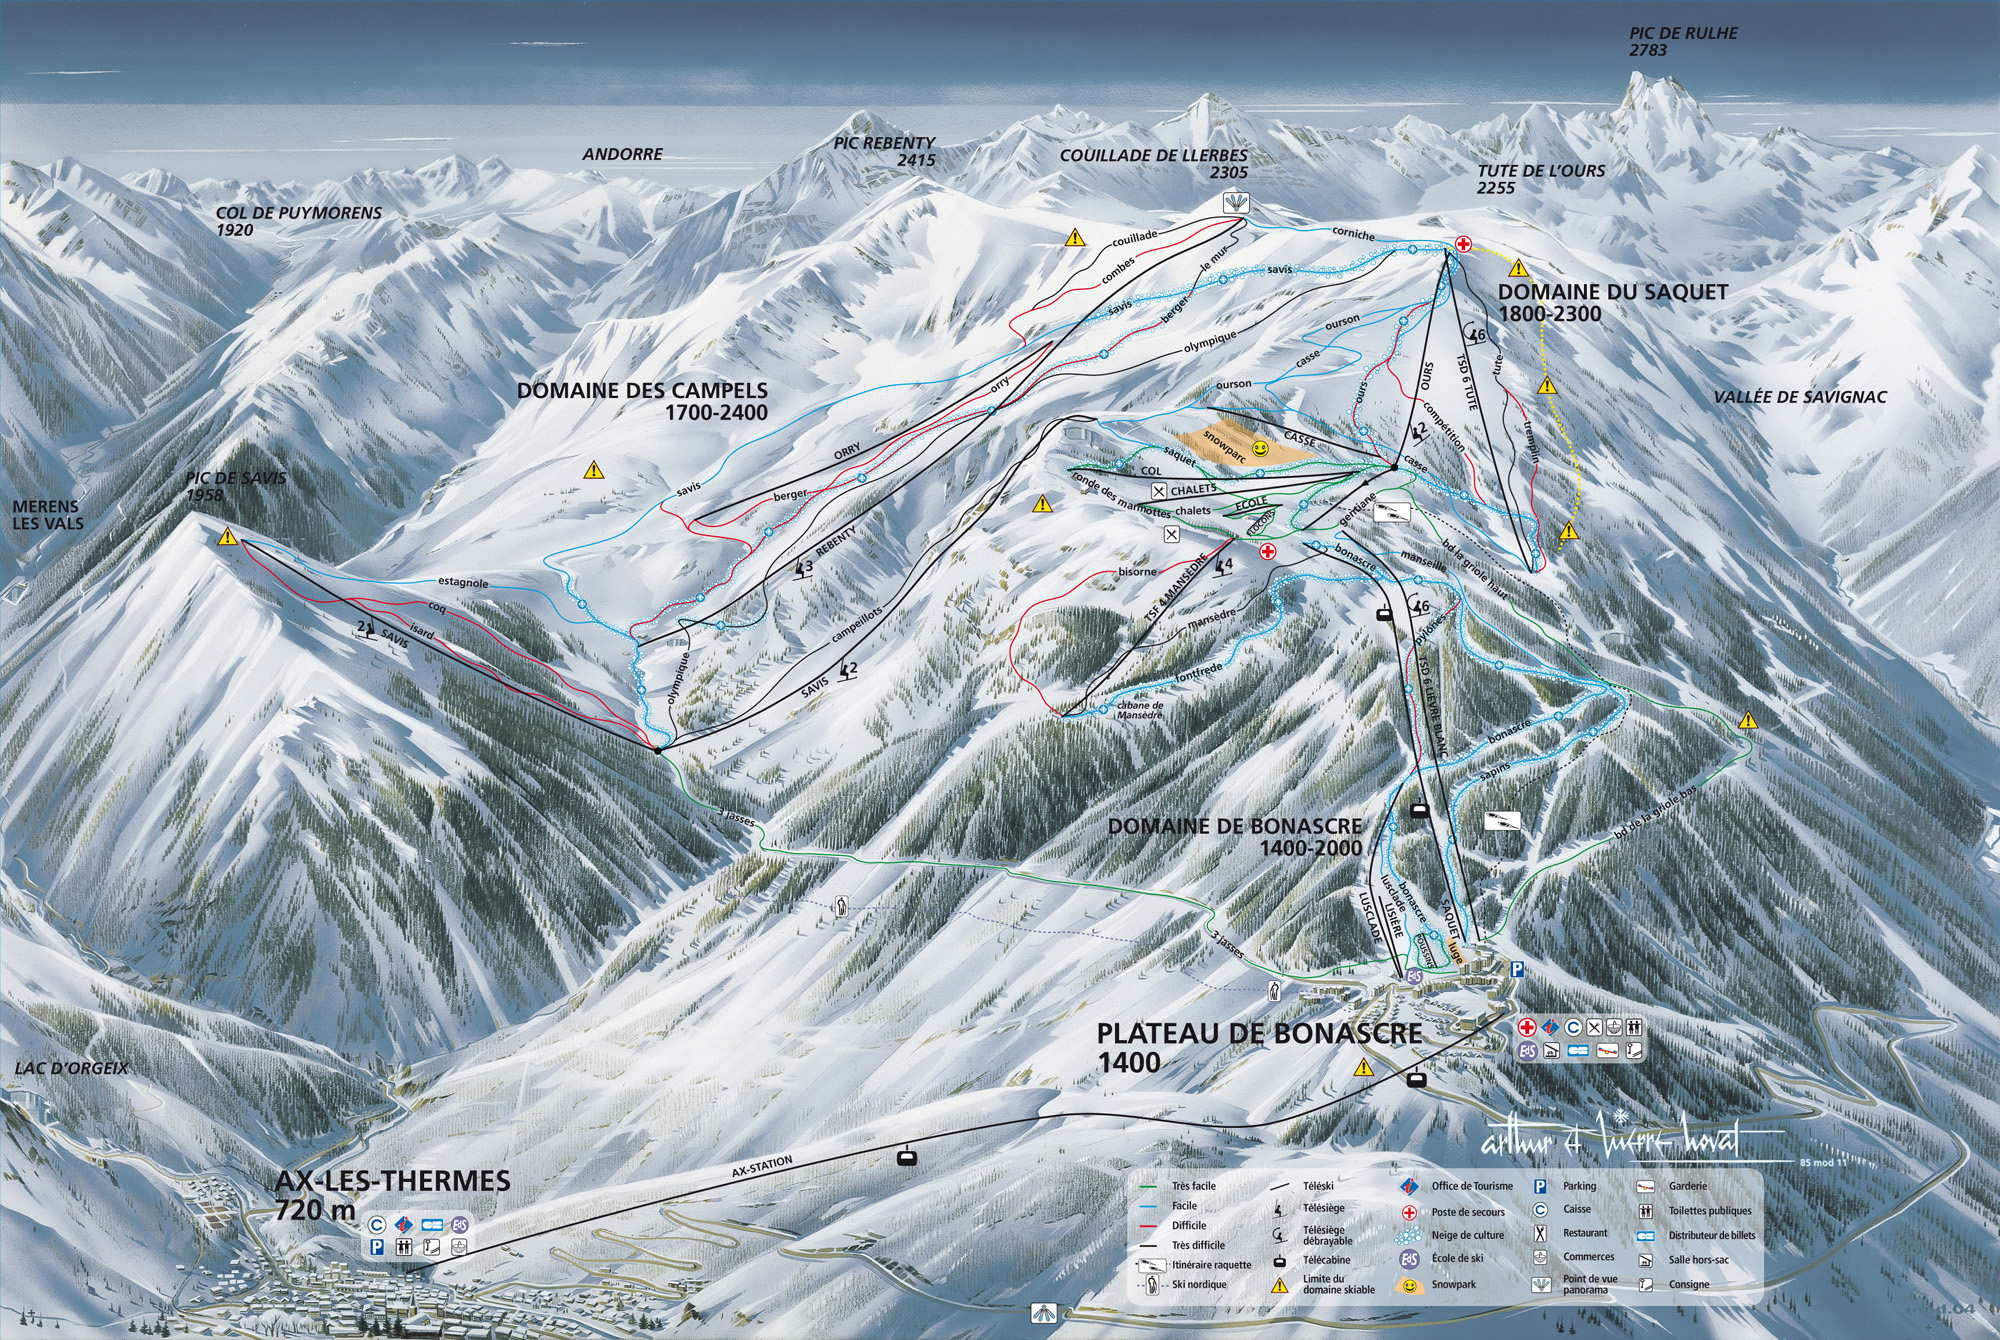 Ax-les-Thermes-piste-map